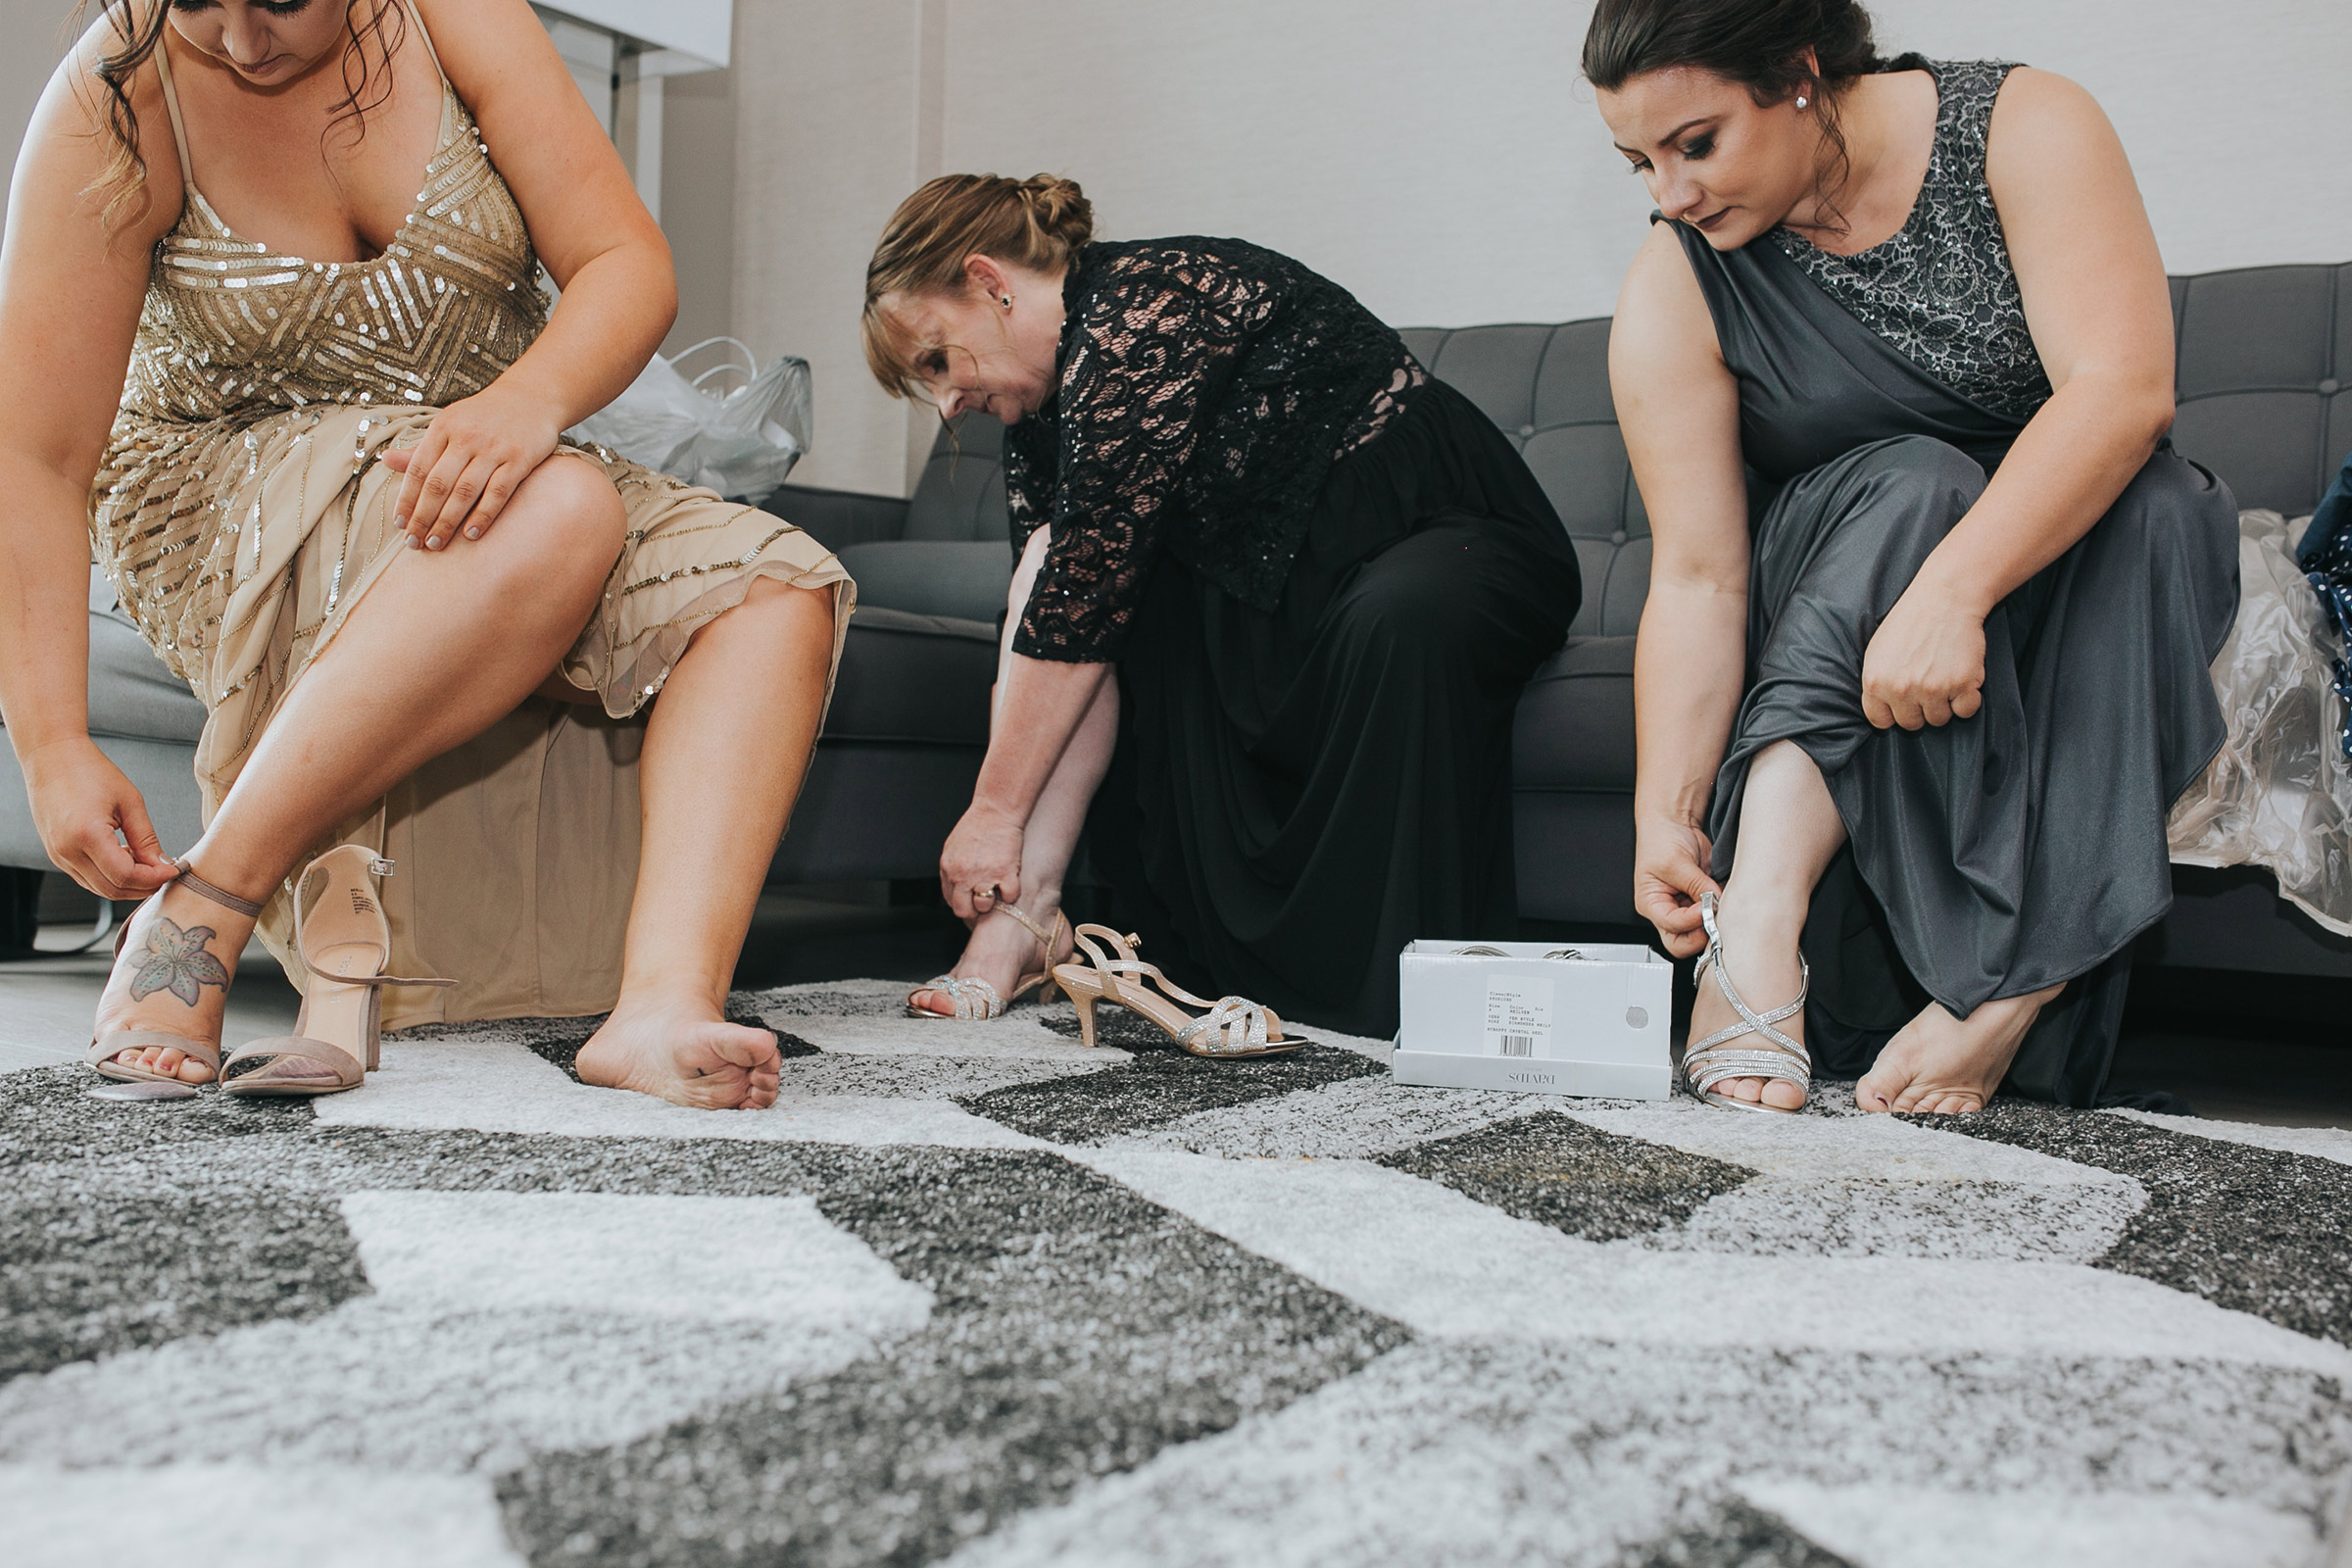 bridesmaids-putting-shoes-on-with-mother-of-bride-desmoines-iowa-ac-hotel-raelyn-ramey-photography.jpg